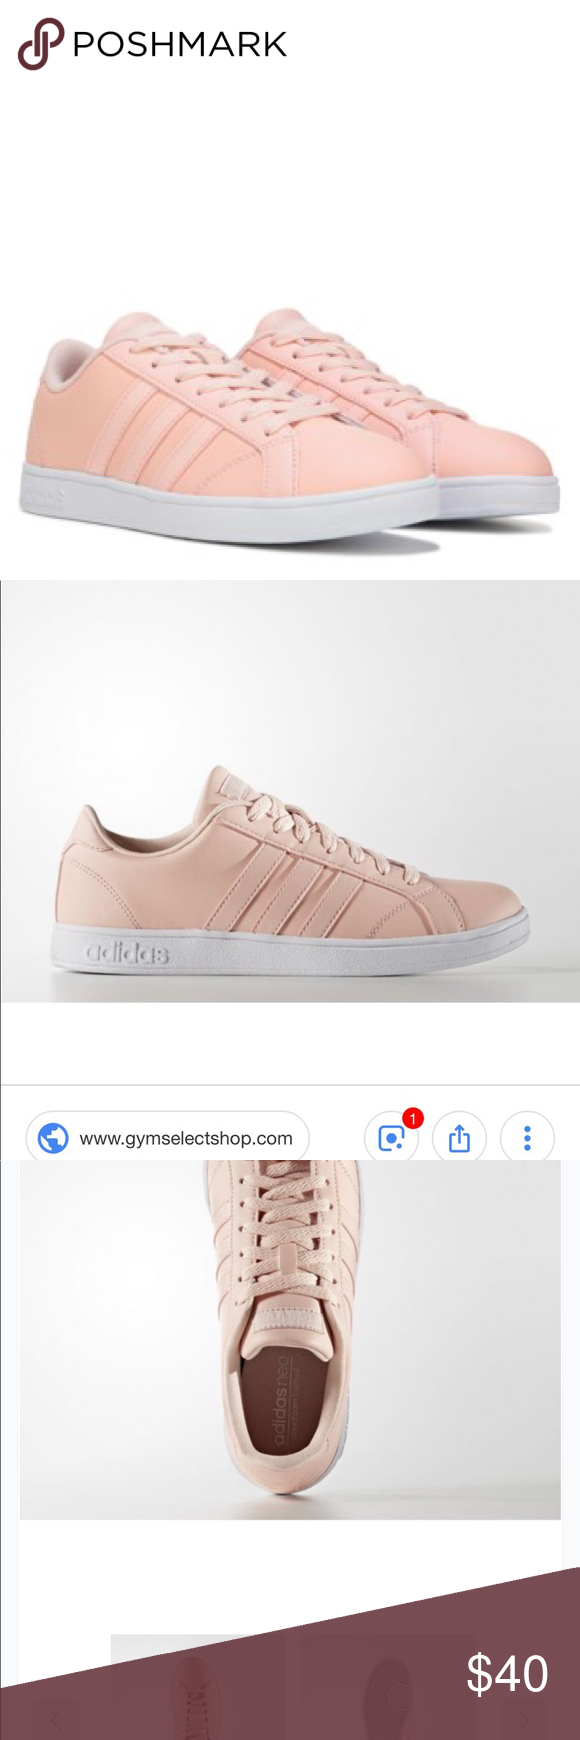 Adidas Neo Comfort Footbed Baseline Sneakers These are trace pink ...